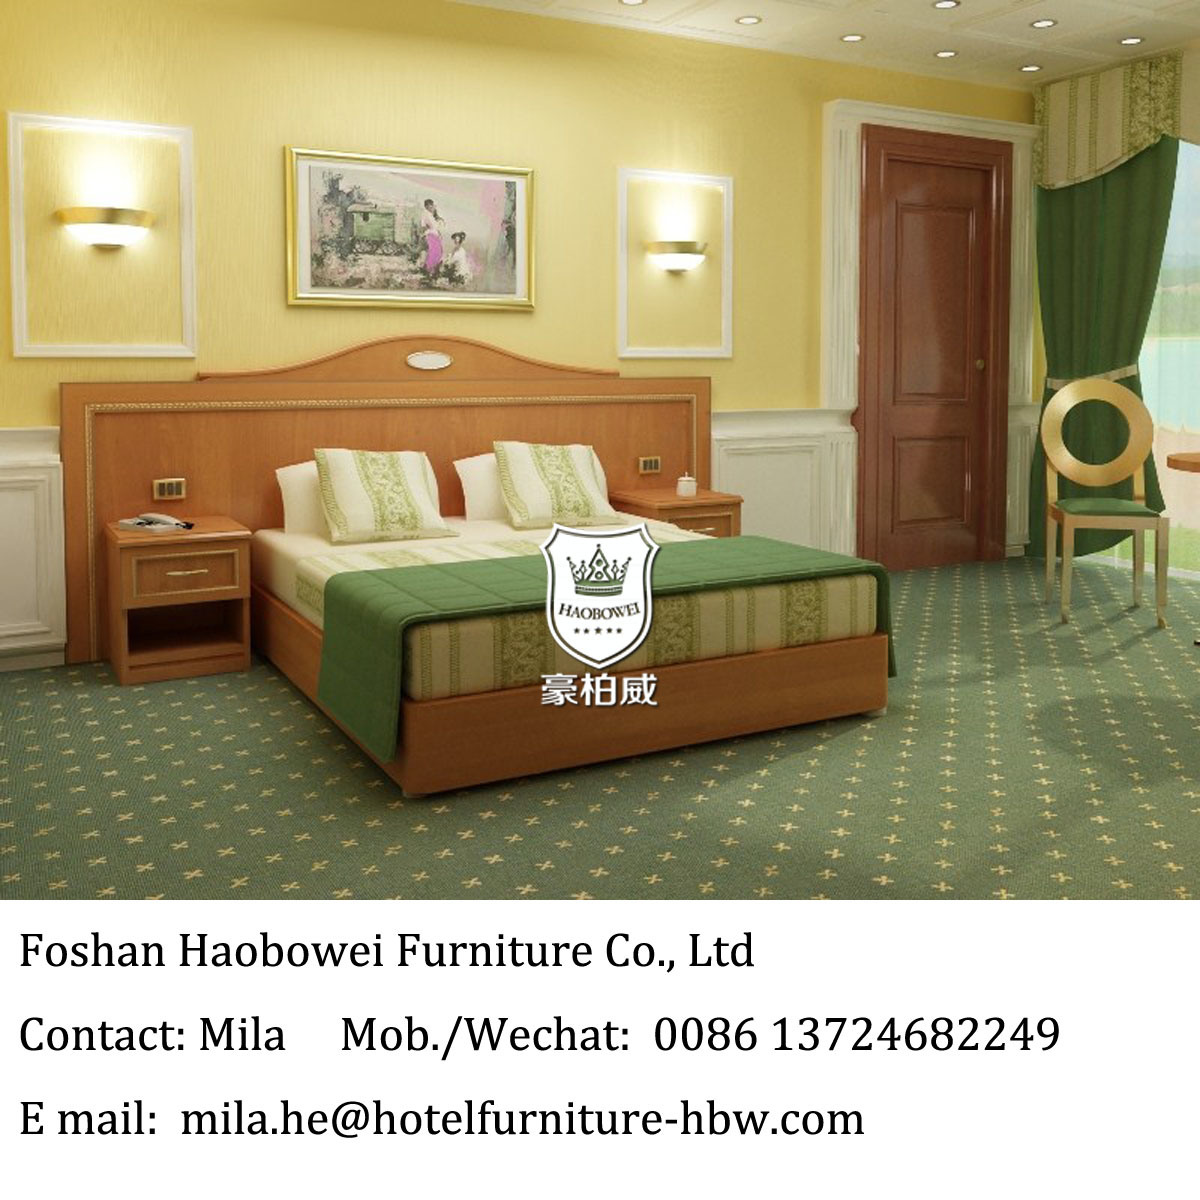 China Twin Room Queen Room Saudi Arabia Classical Hotel Bedroom Furniture In Antique Design China Twin Room Furniture Queen Room Furniture